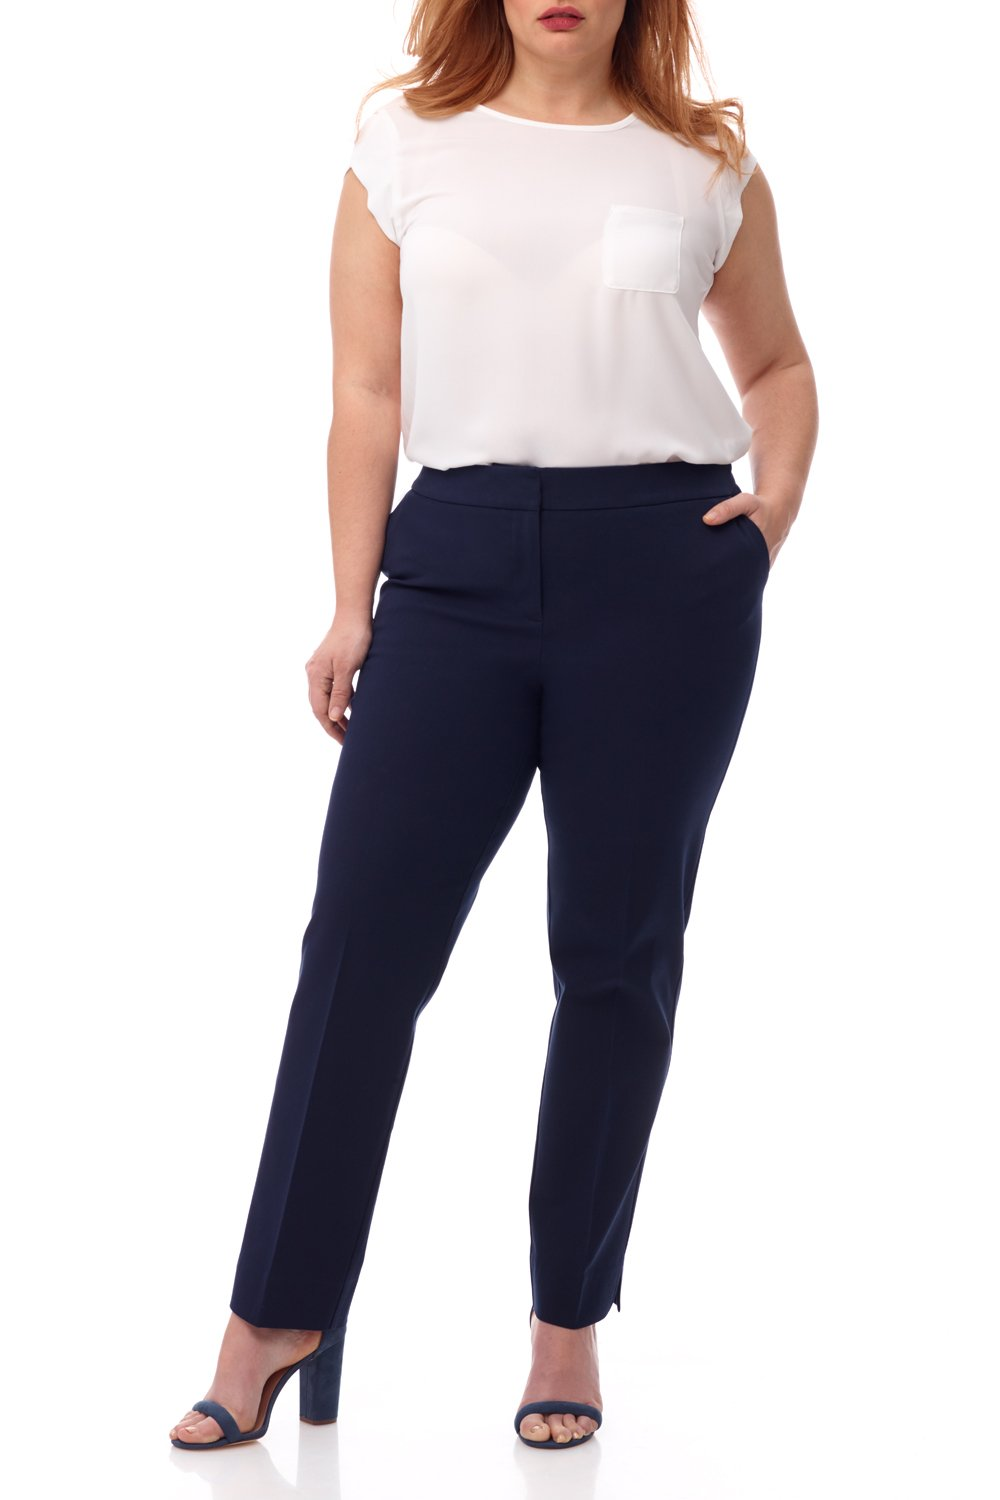 Rekucci Curvy Woman Plus Size Easy Chic Zip Front Pant In Ultimate 360 Degree Stretch Cotton (16W,Navy)